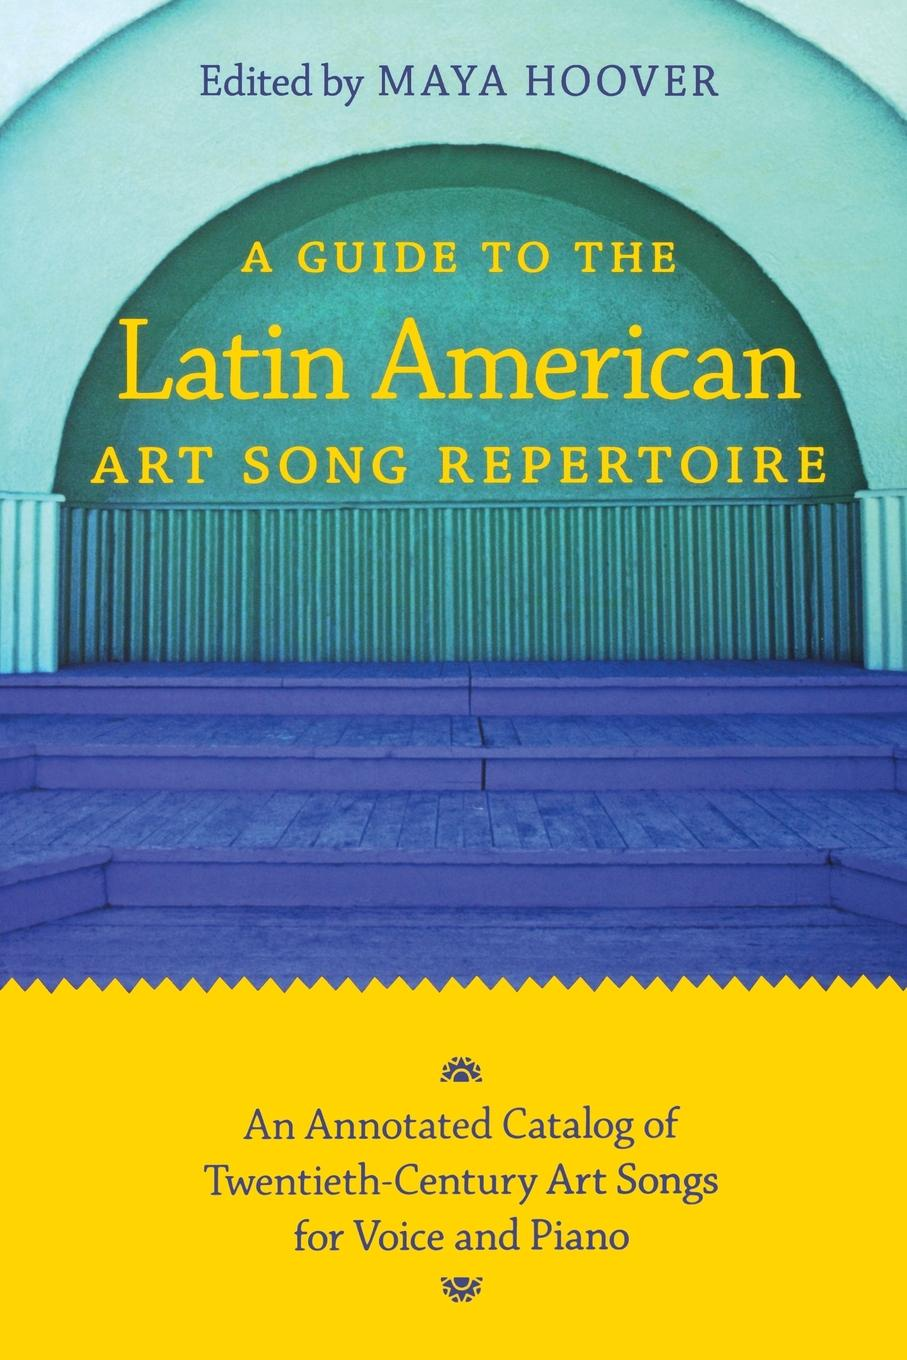 Guide to the Latin American Art Song Repertoire. An Annotated Catalog of Twentieth-Century Art Songs for Voice and Piano